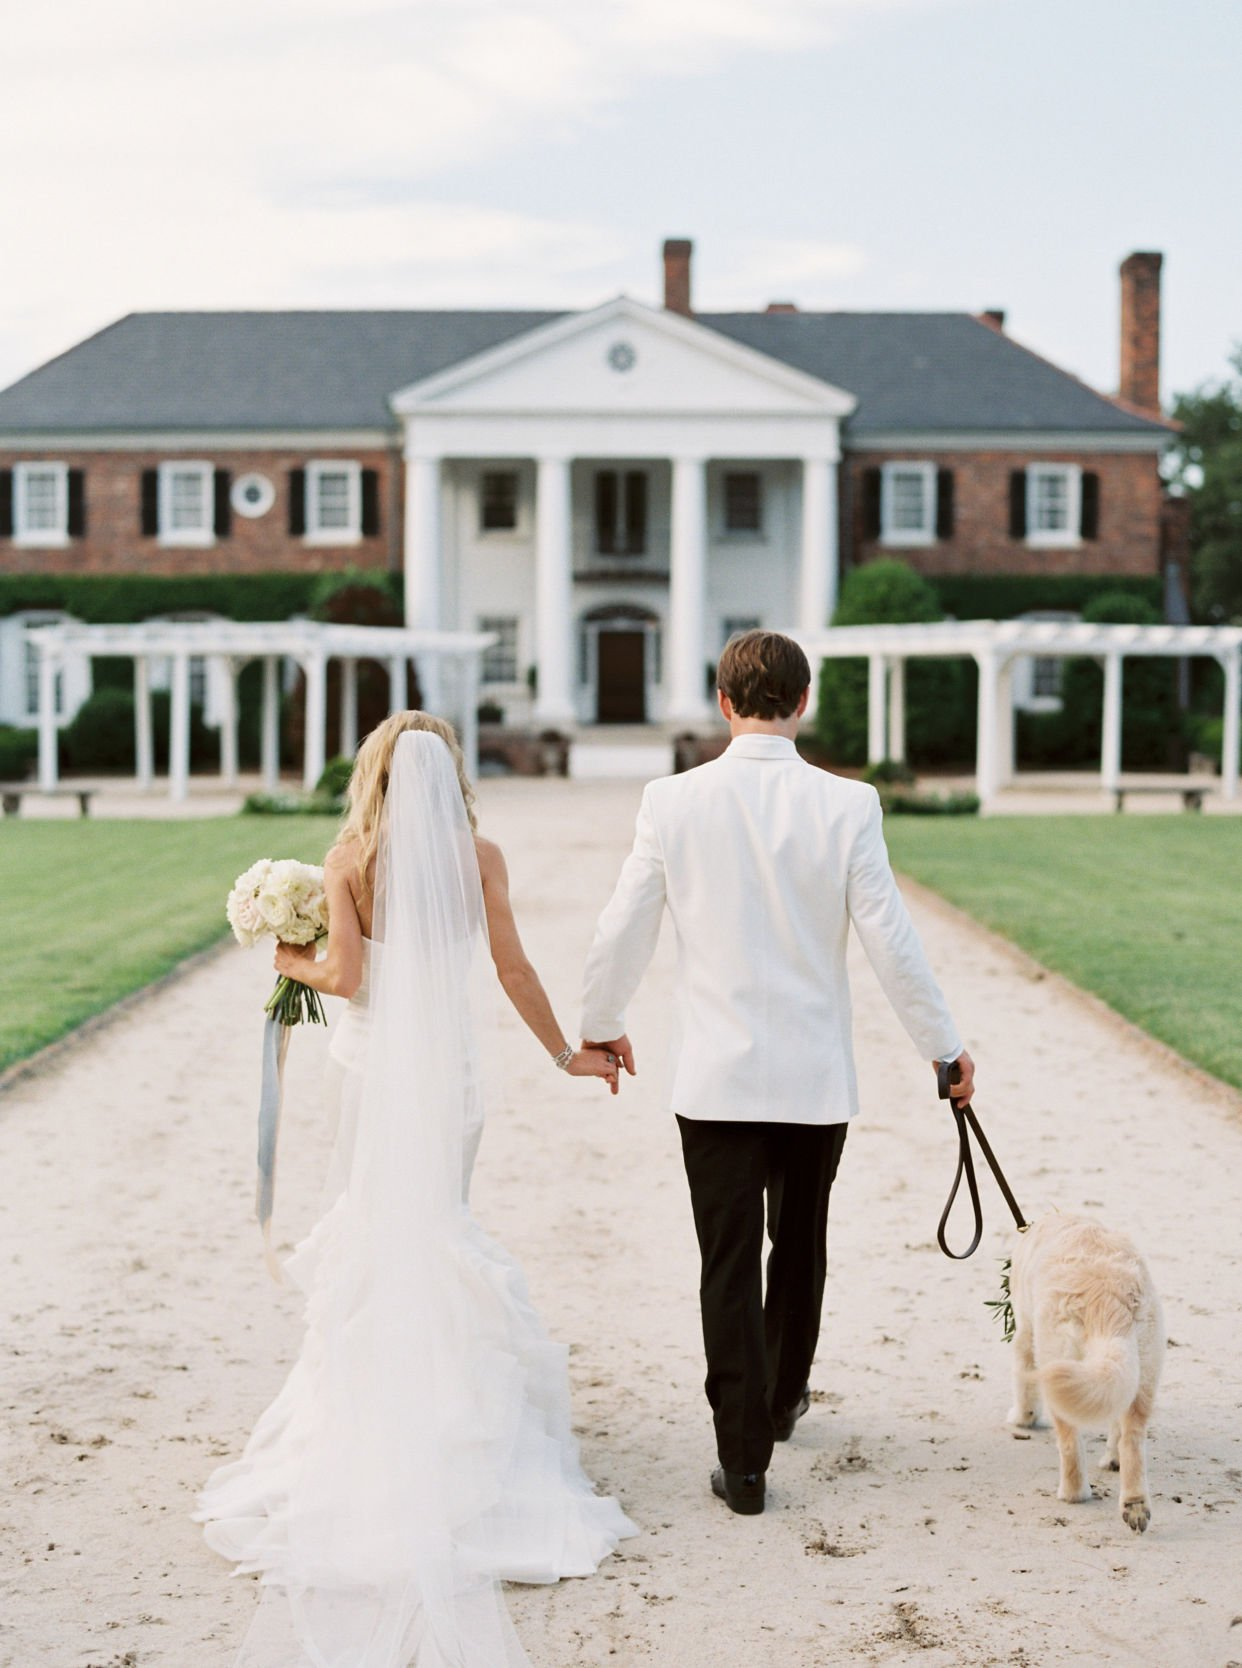 What It Costs To Get Married At 20 Charleston Wedding Venues: Downtown Charleston Wedding Venues At Reisefeber.org